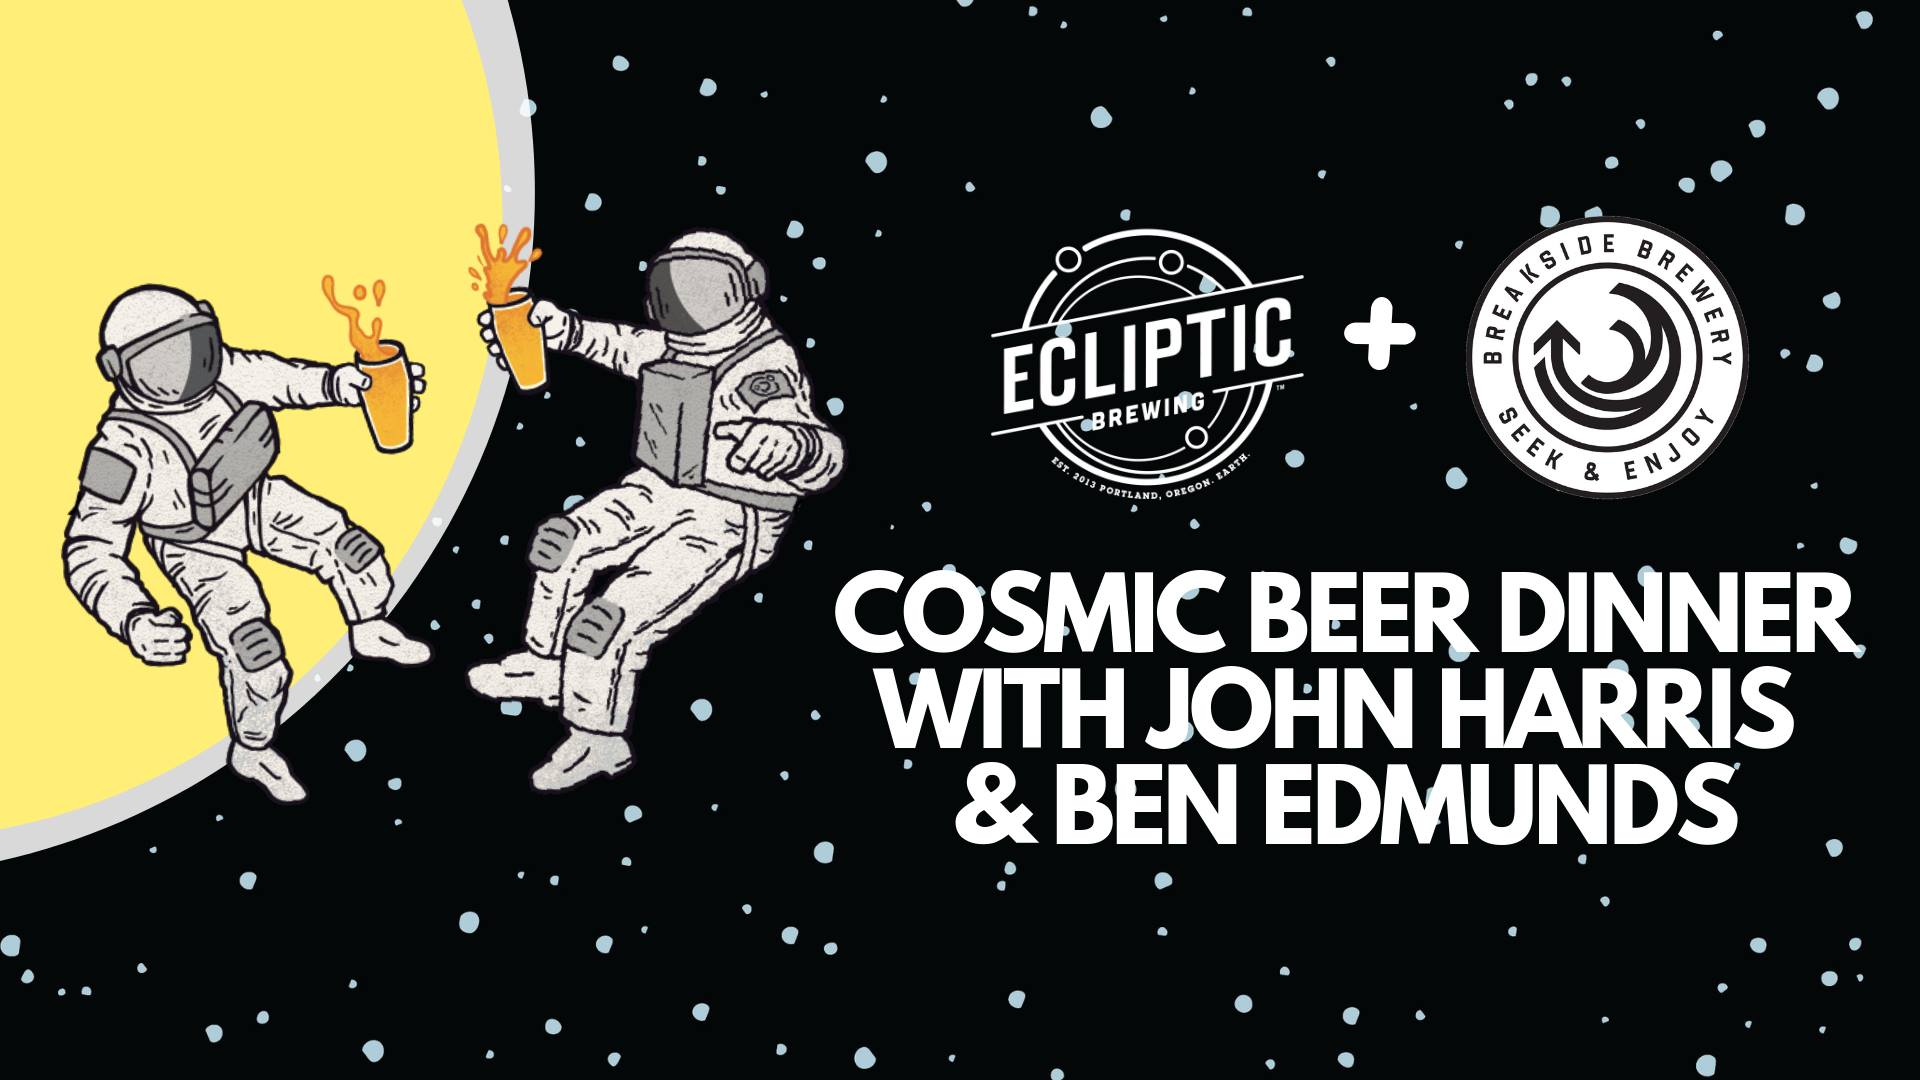 Ecliptic Brewing ‎Cosmic Beer Dinner with John Harris & Ben Edmunds